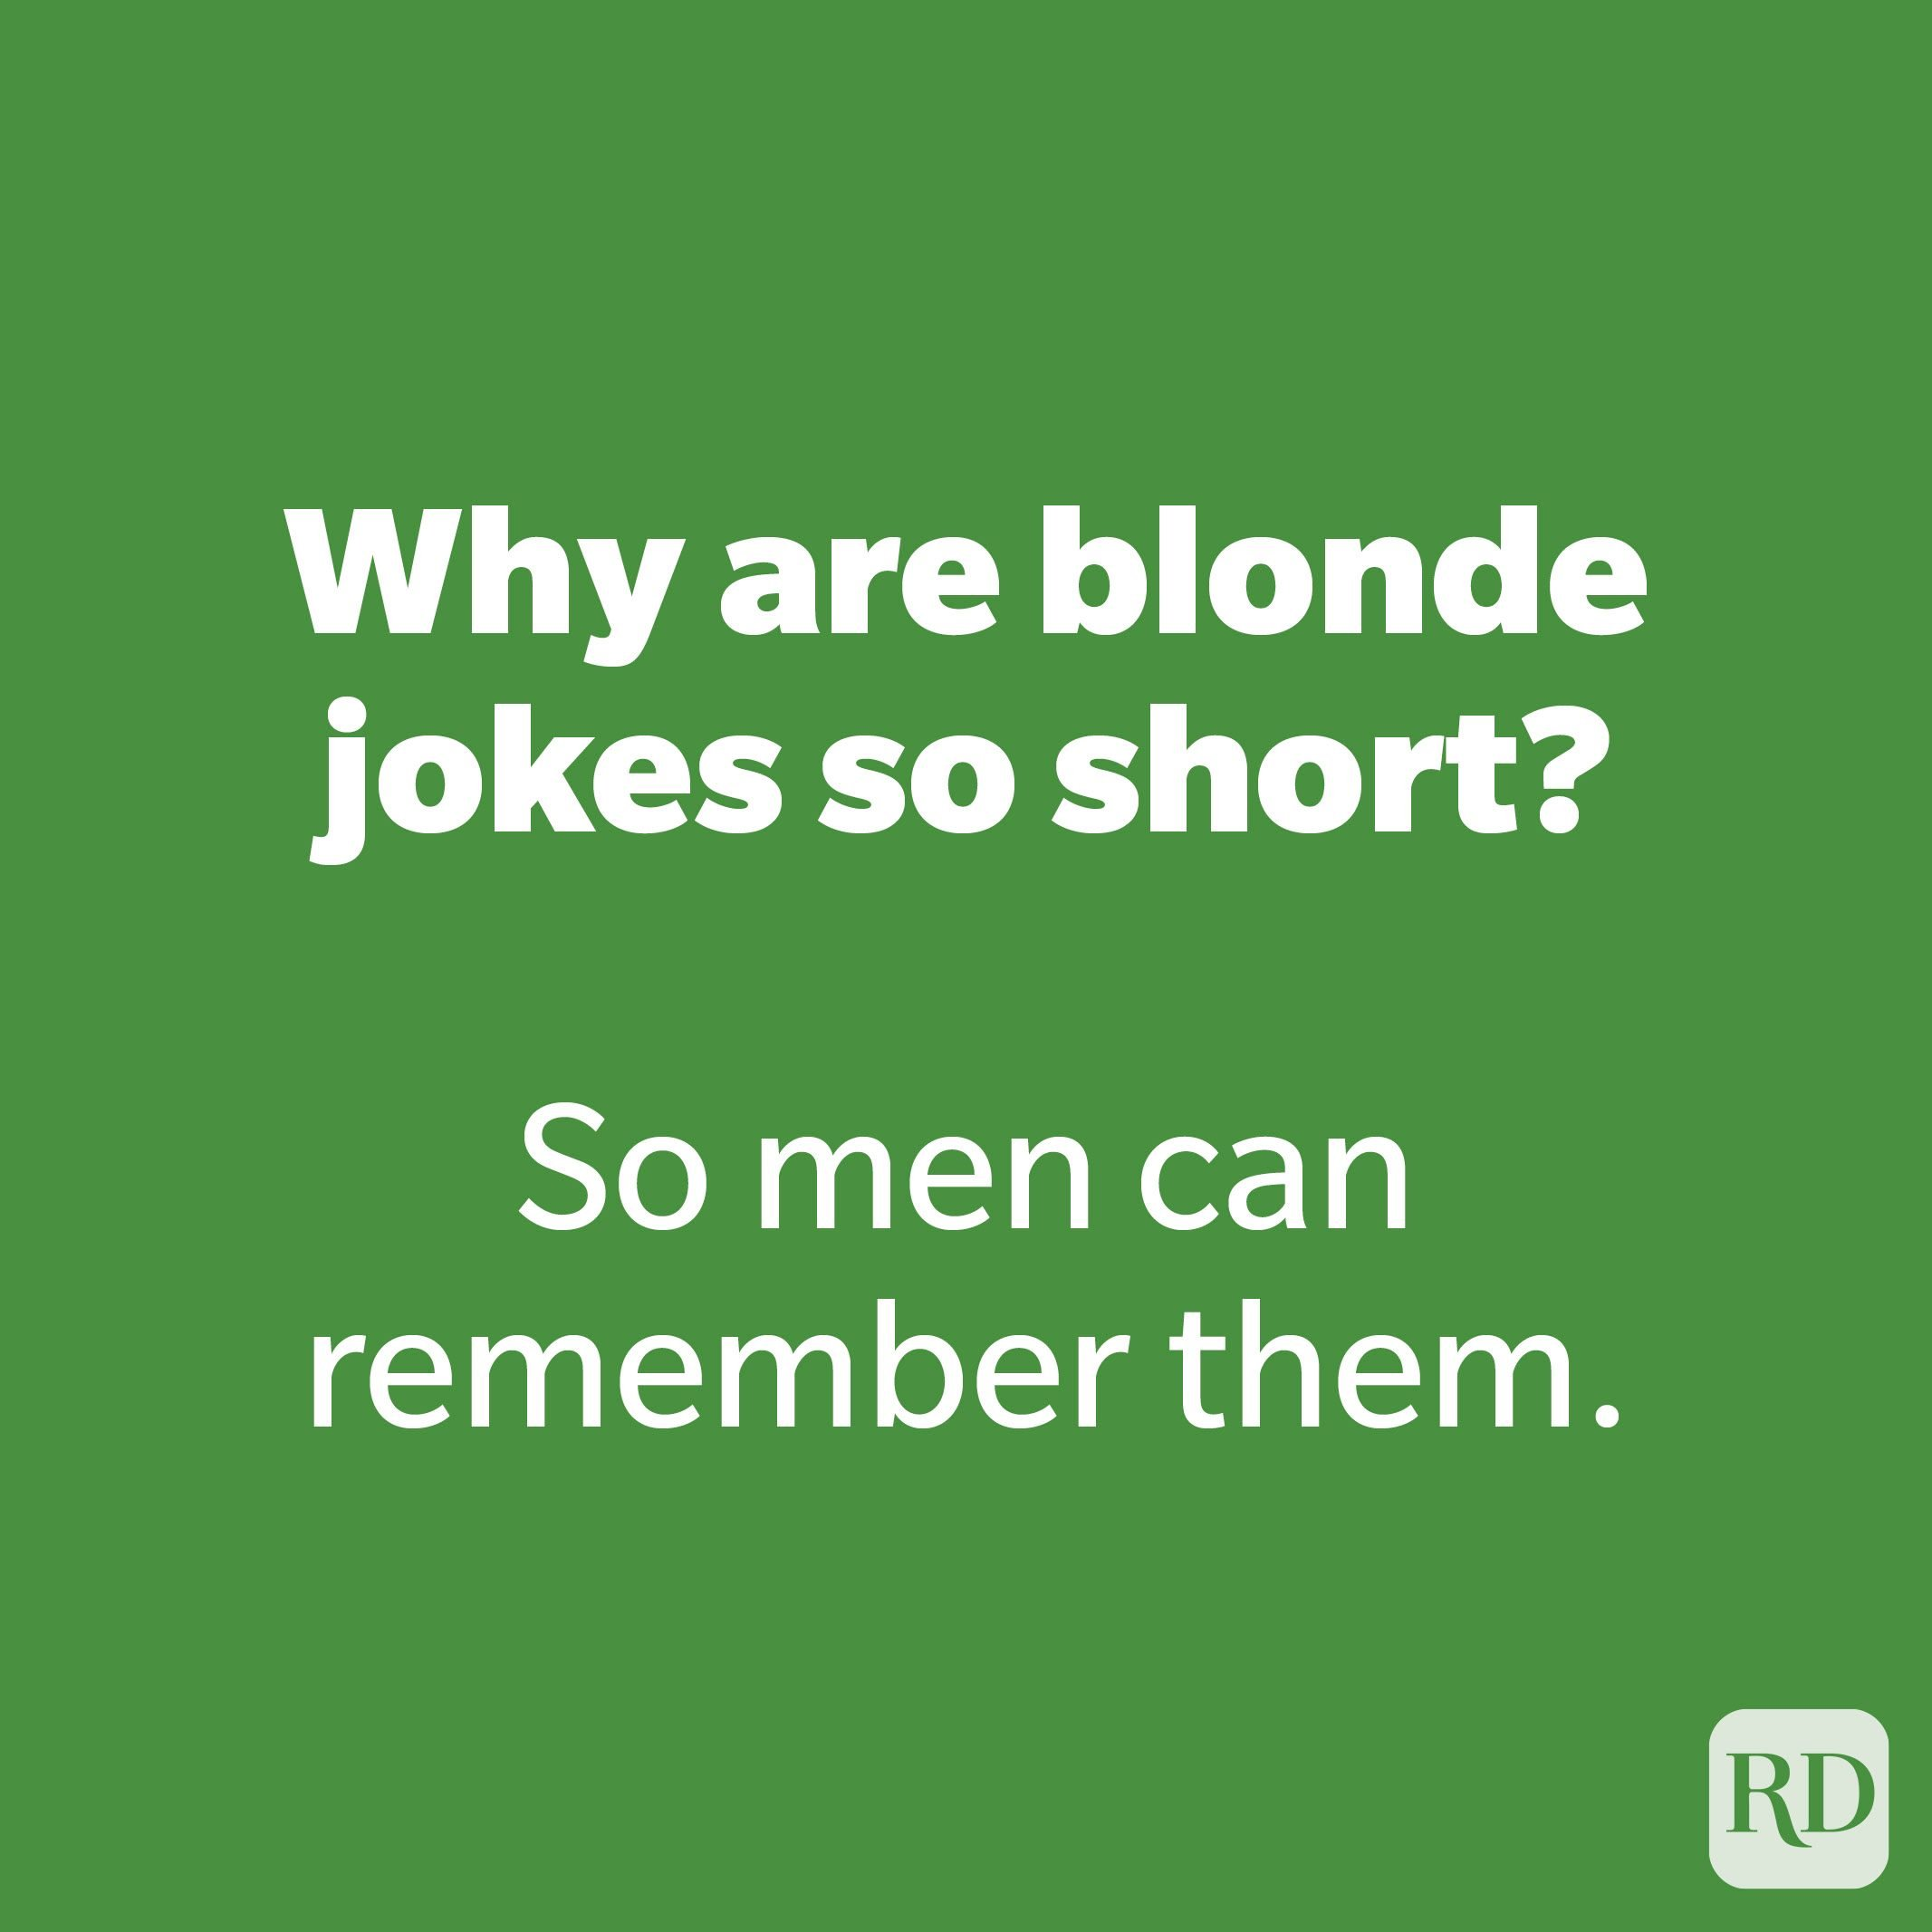 Why are blonde jokes so short?